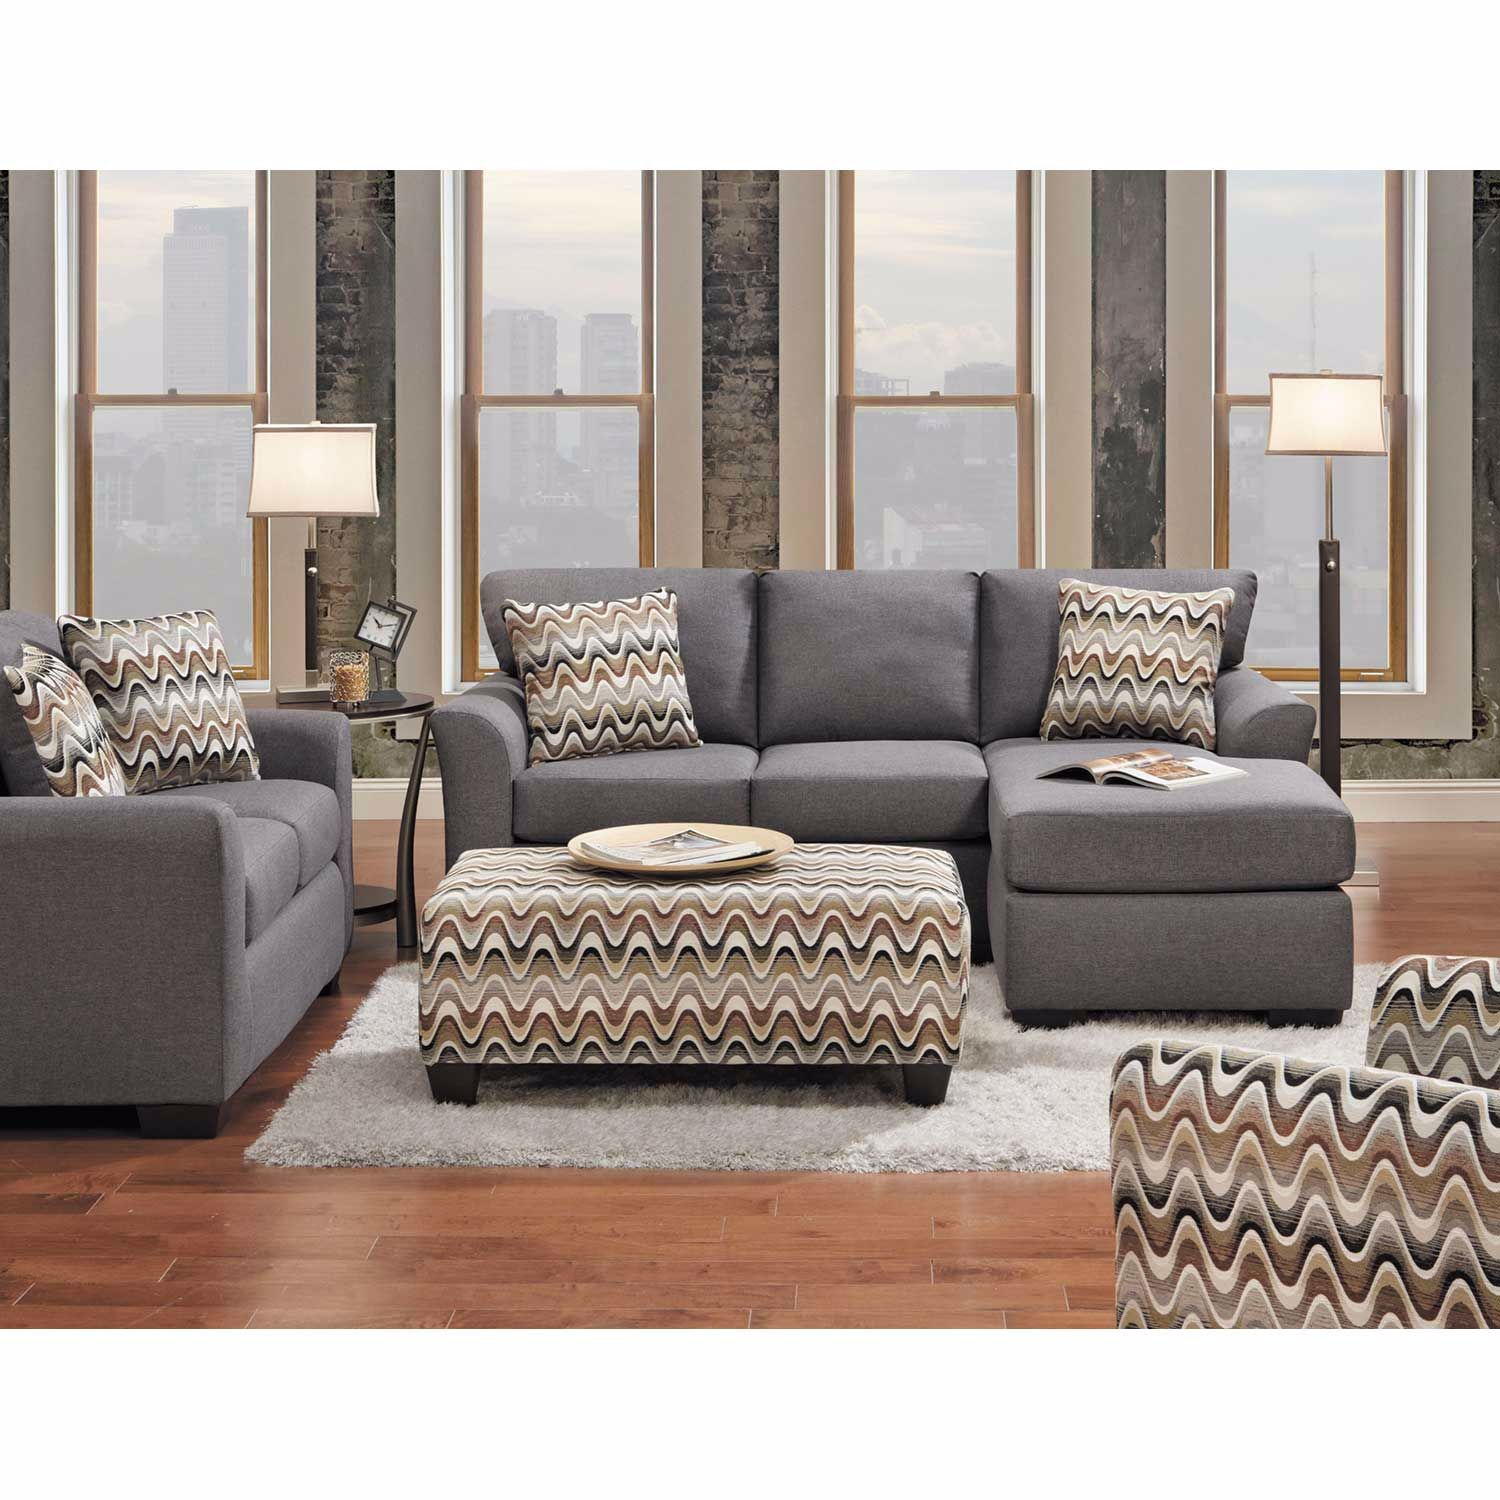 Picture of Ryleigh Waves Accent Chair